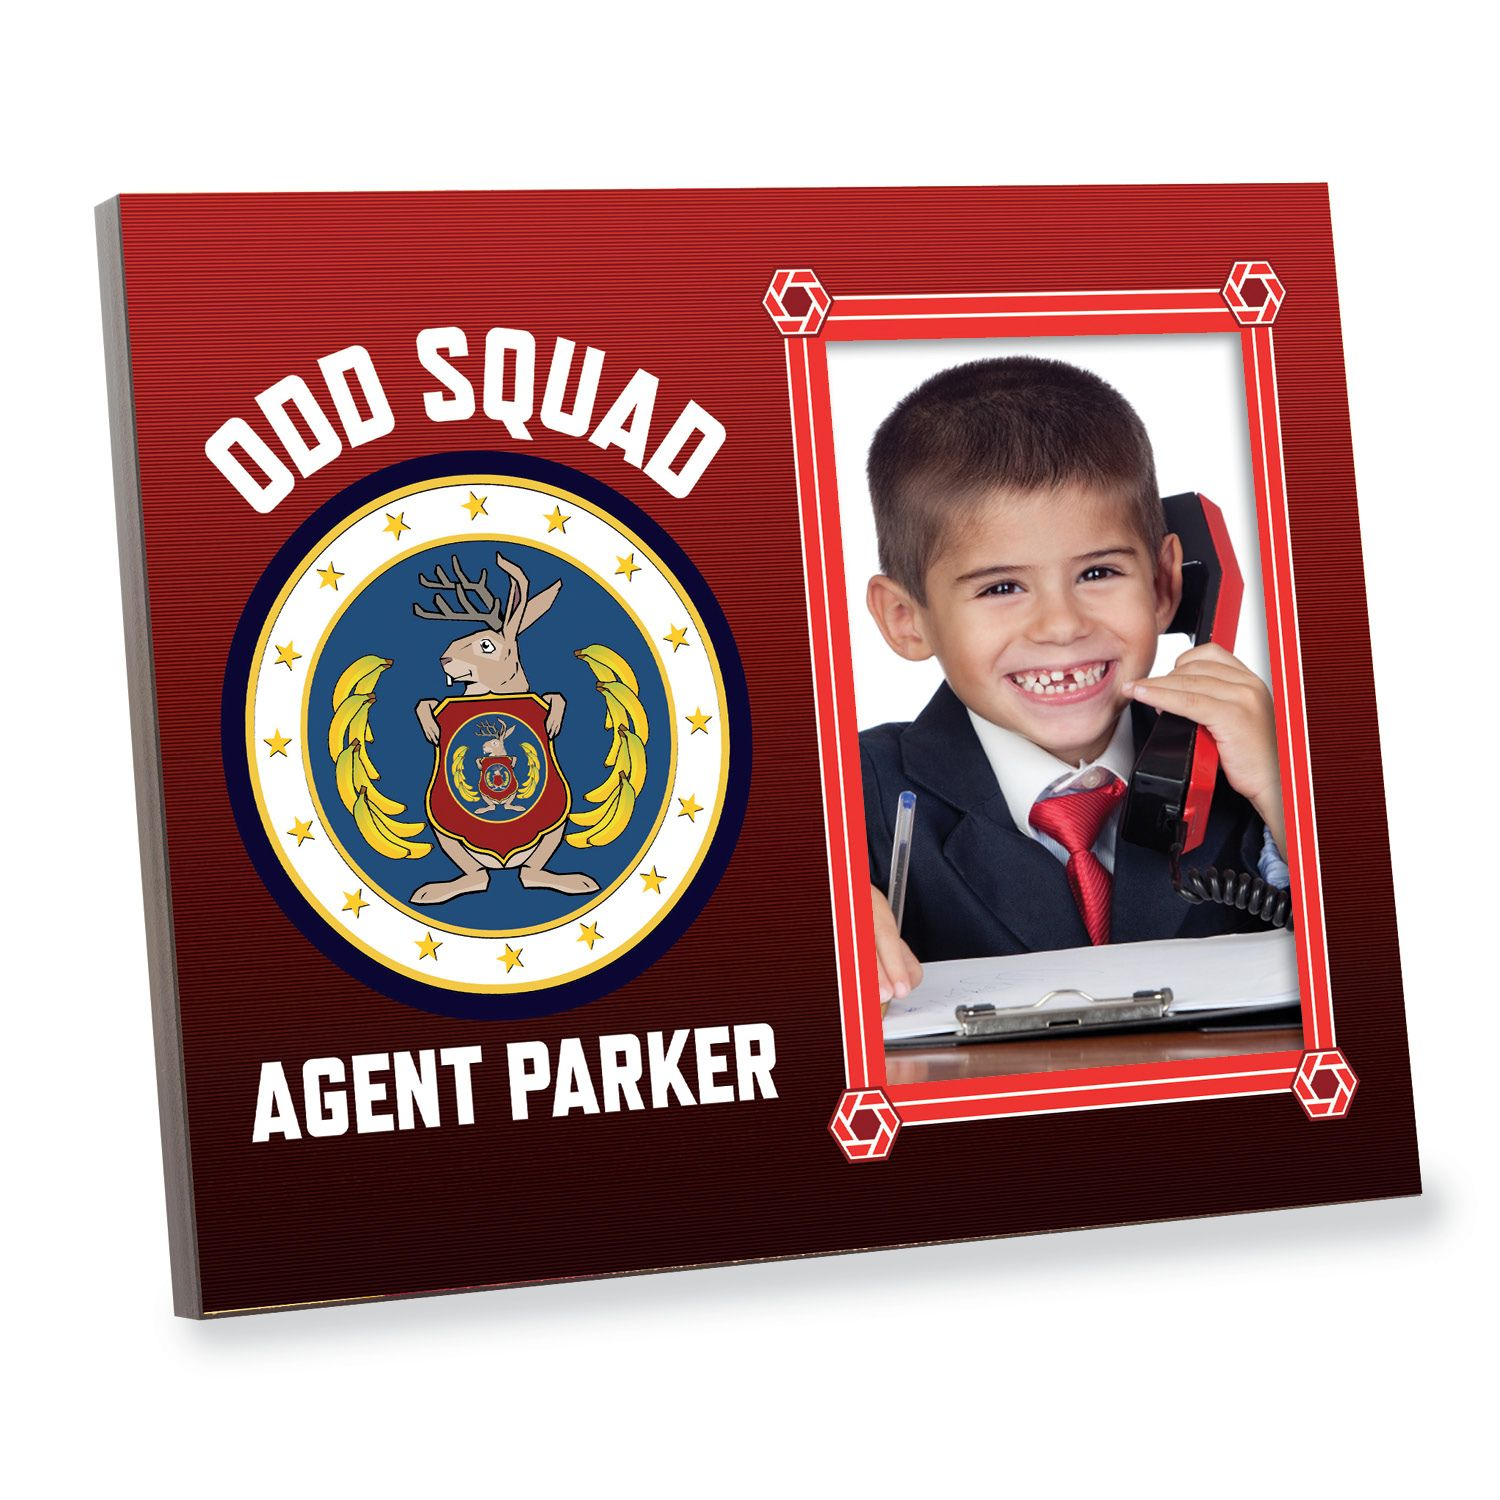 This Odd Squad Agent Picture Frame is perfect for fans of